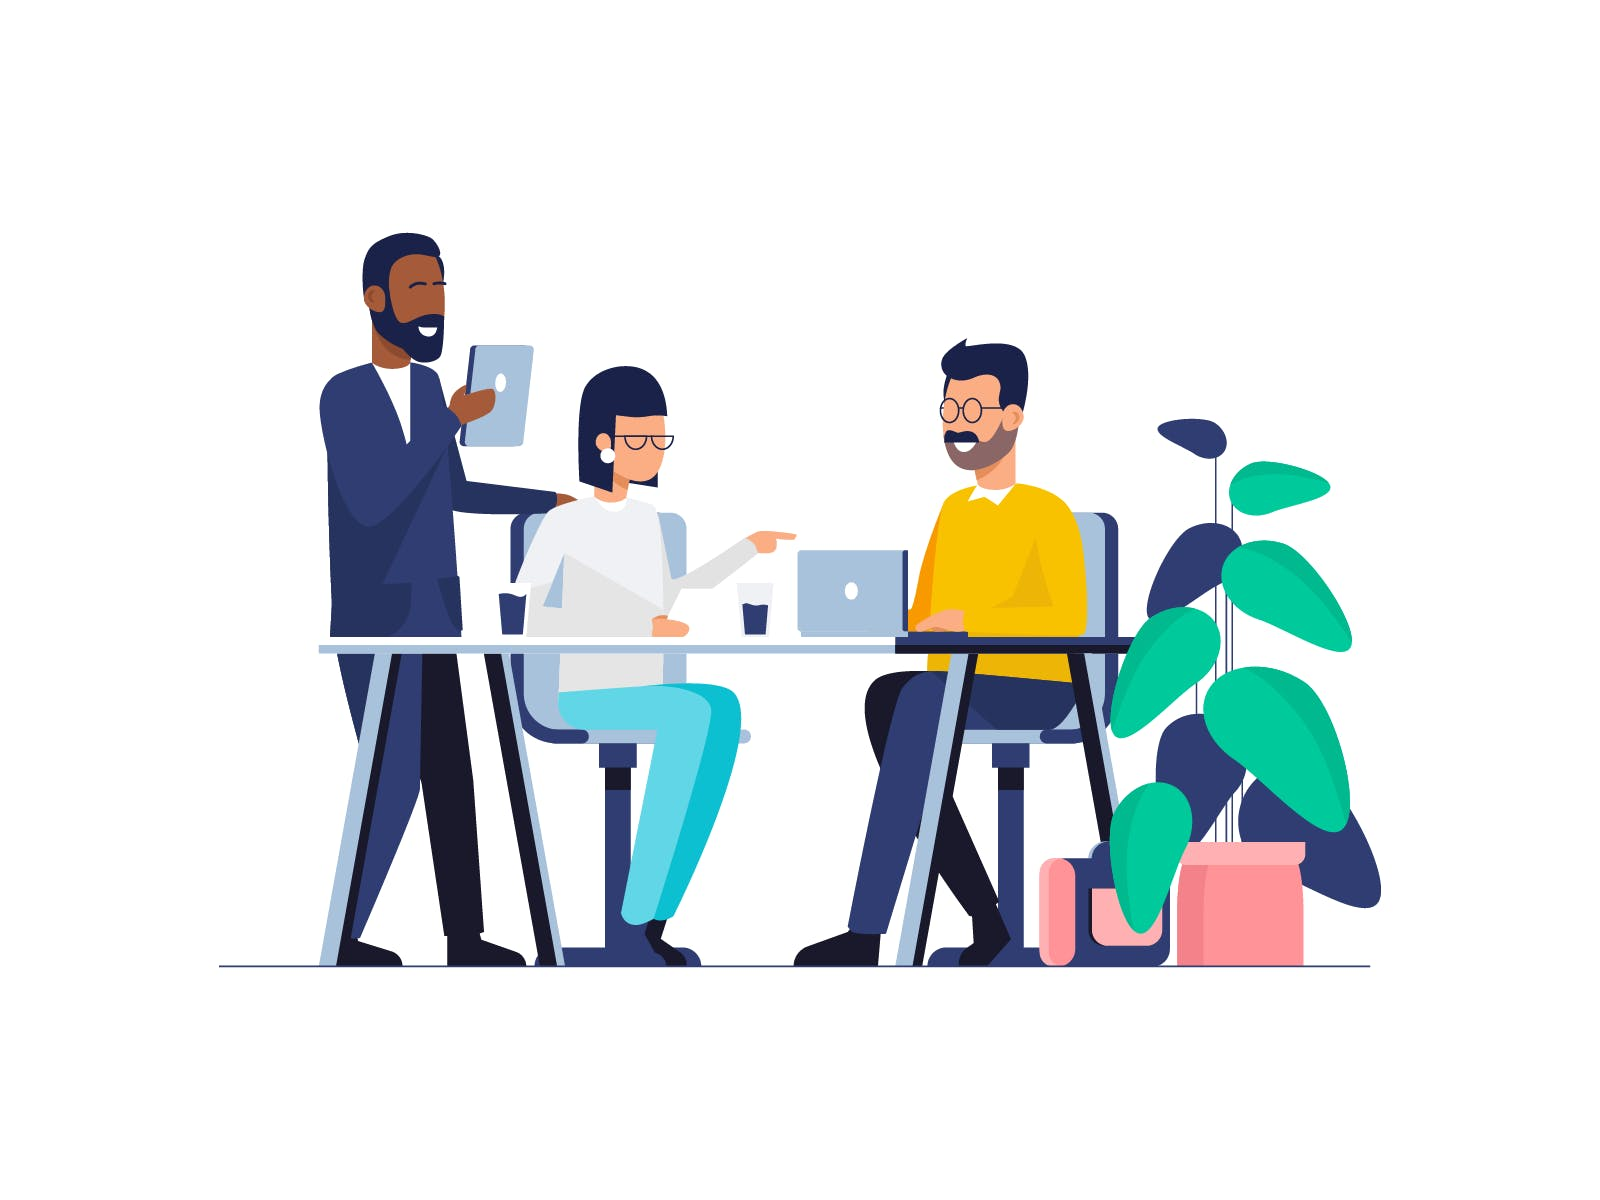 Graphic of business people sitting at a desk